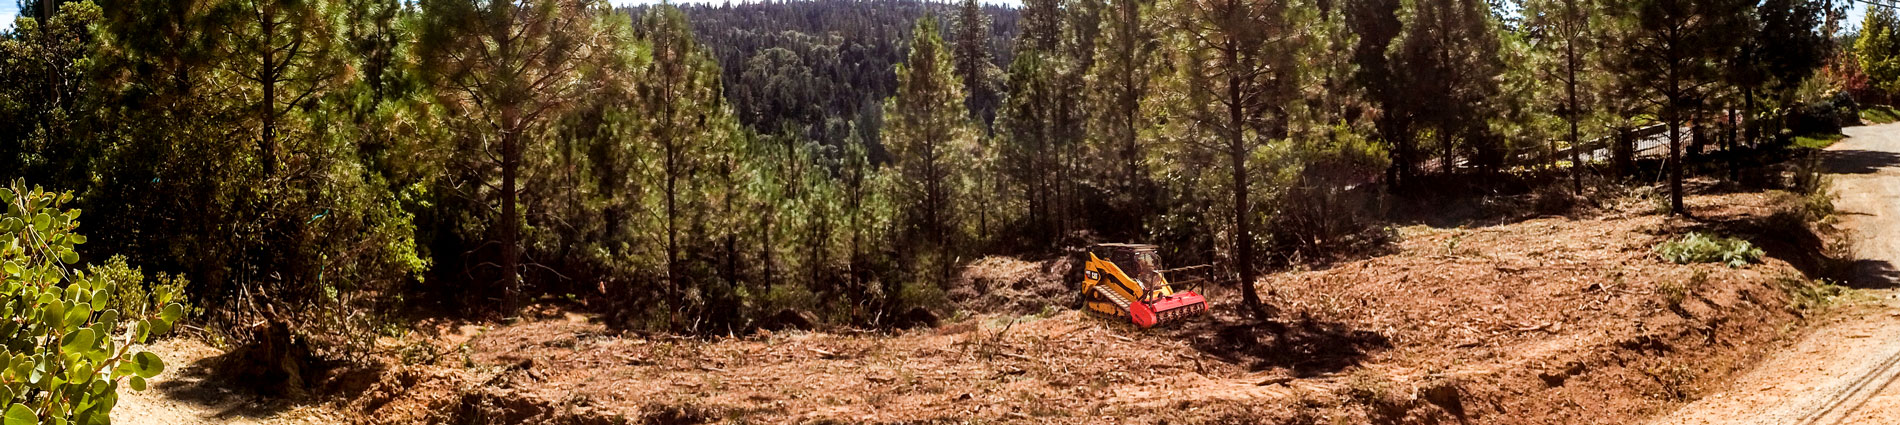 Land Clearing by Byers with Wildfire Prevention and Defensible space.